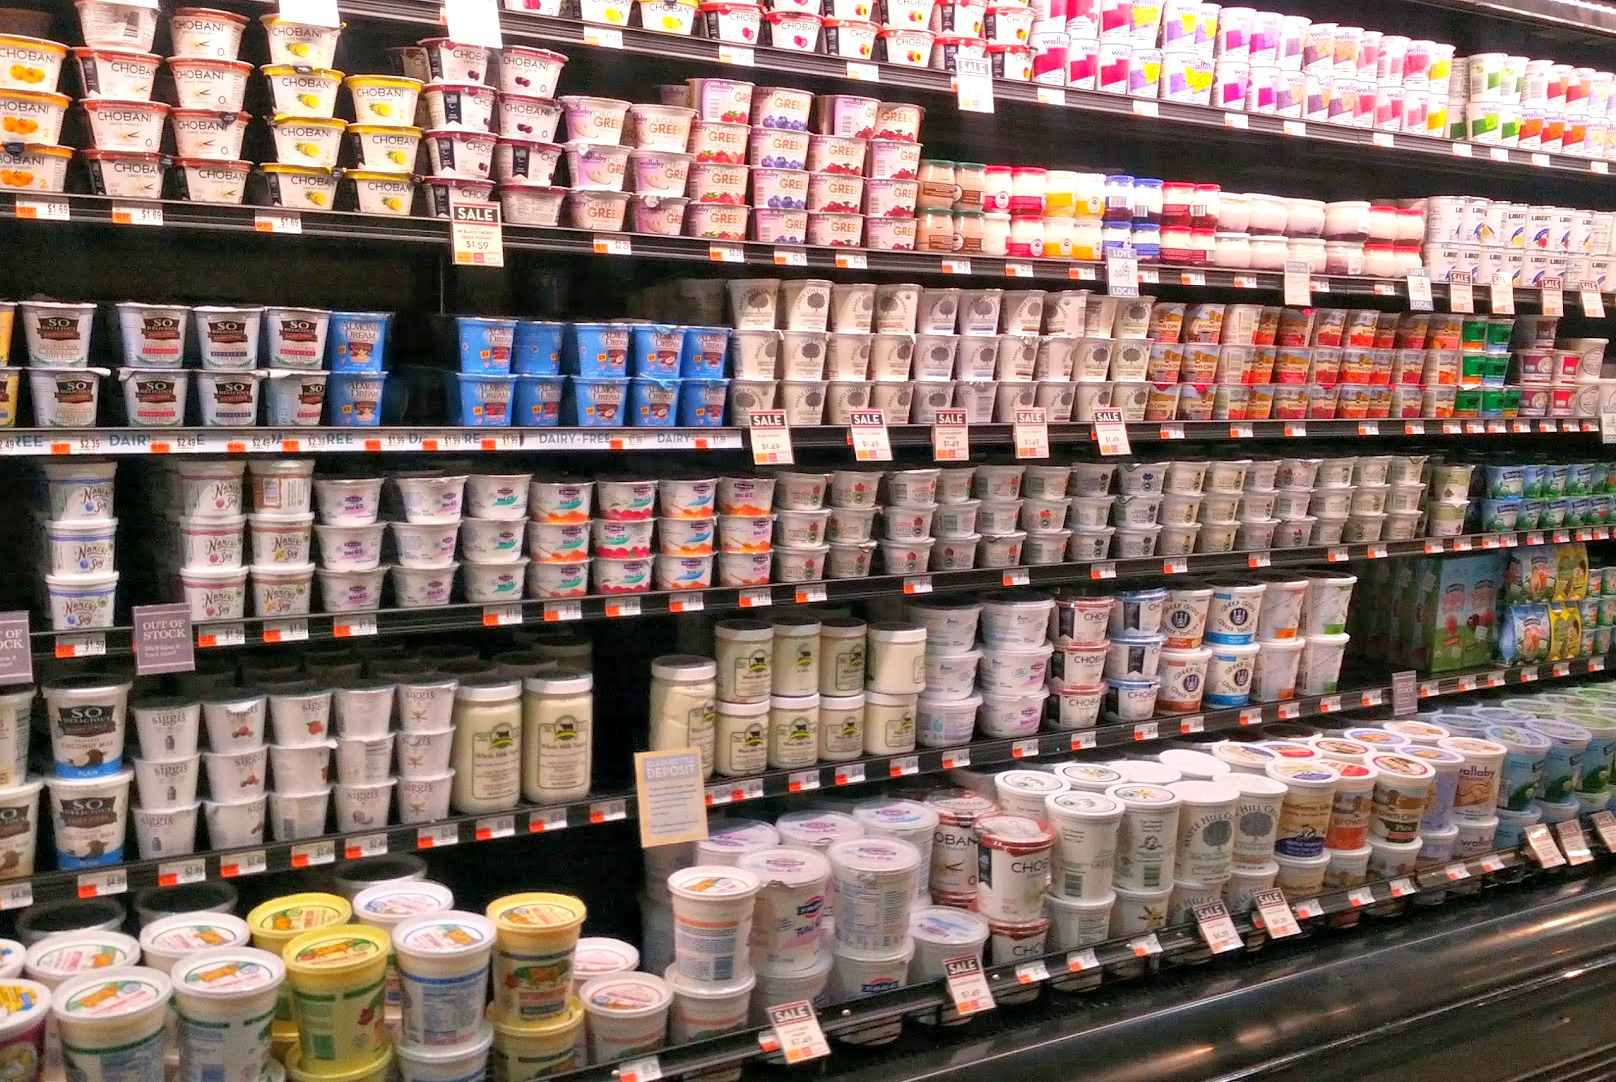 Yogurt Galore!